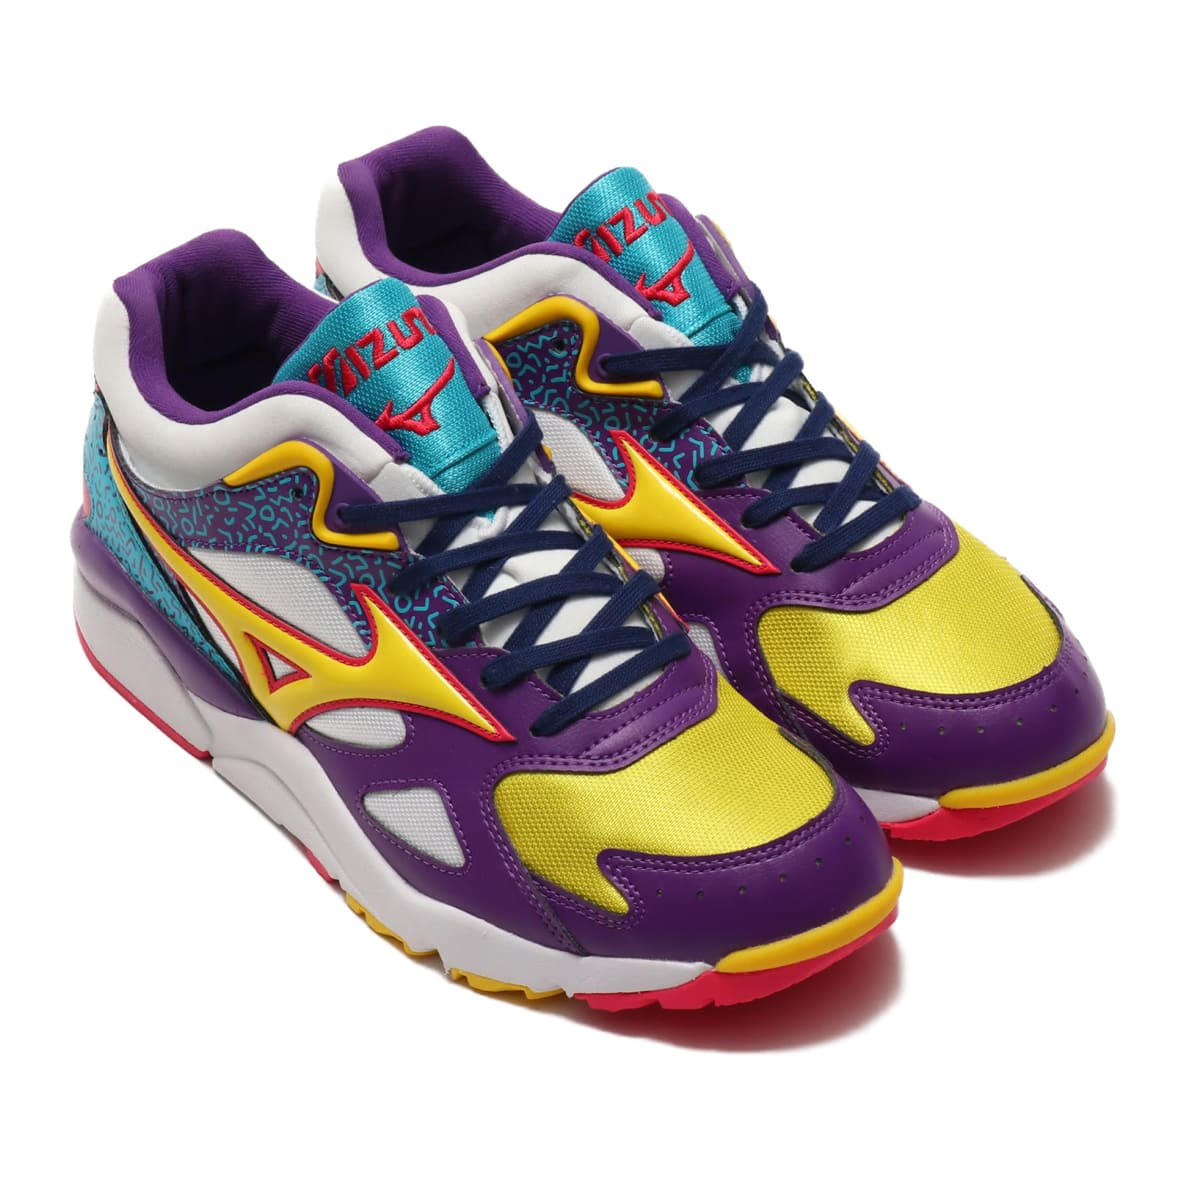 MIZUNO SKY MEDAL WHITE/YELLOW/PURPLE 19AW-I_photo_large